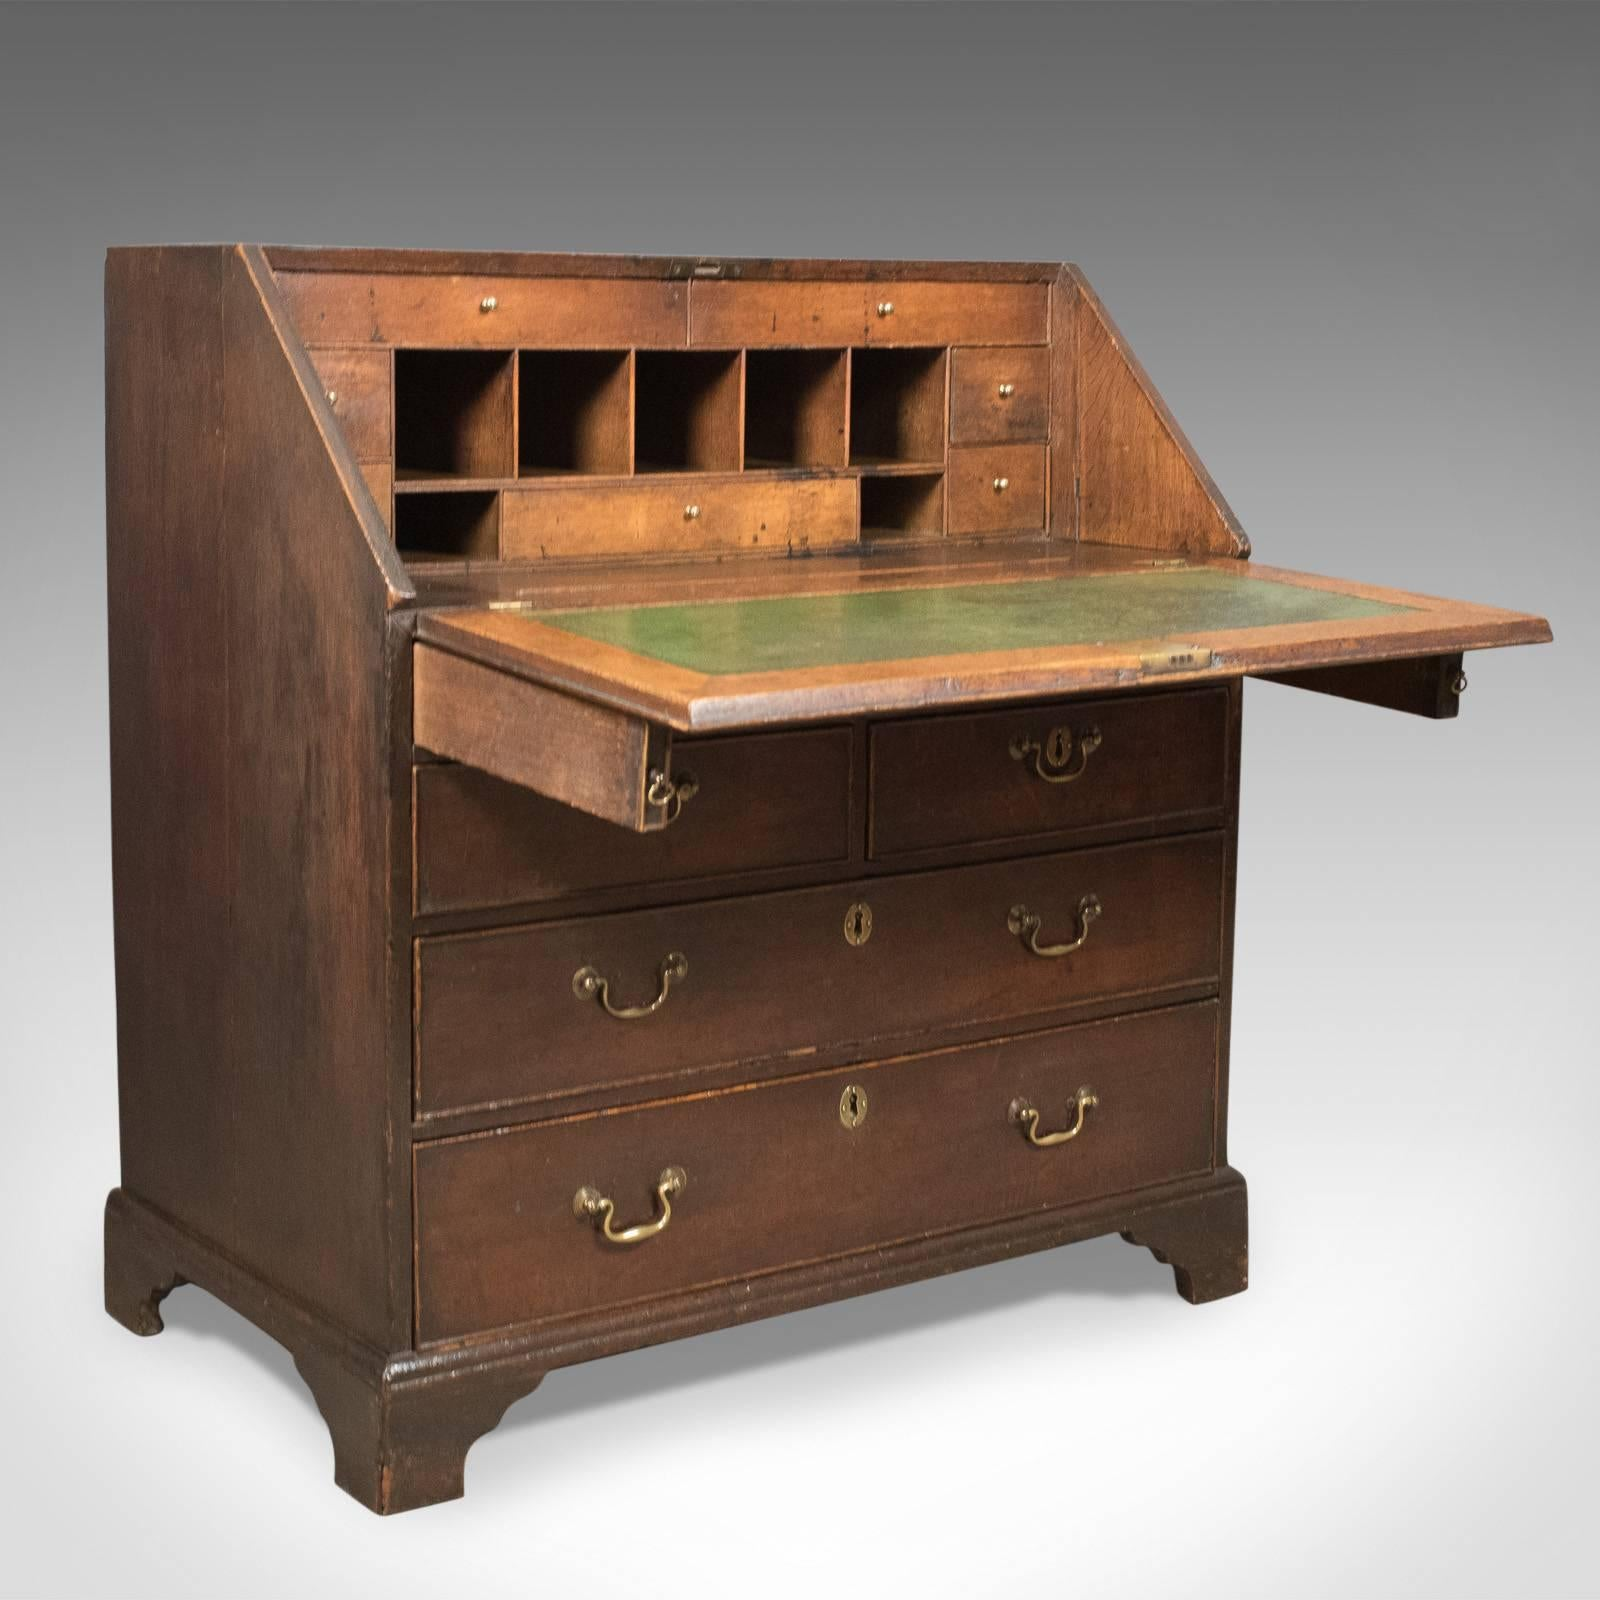 mid products small desk century with mod the mcm drawers walnut good